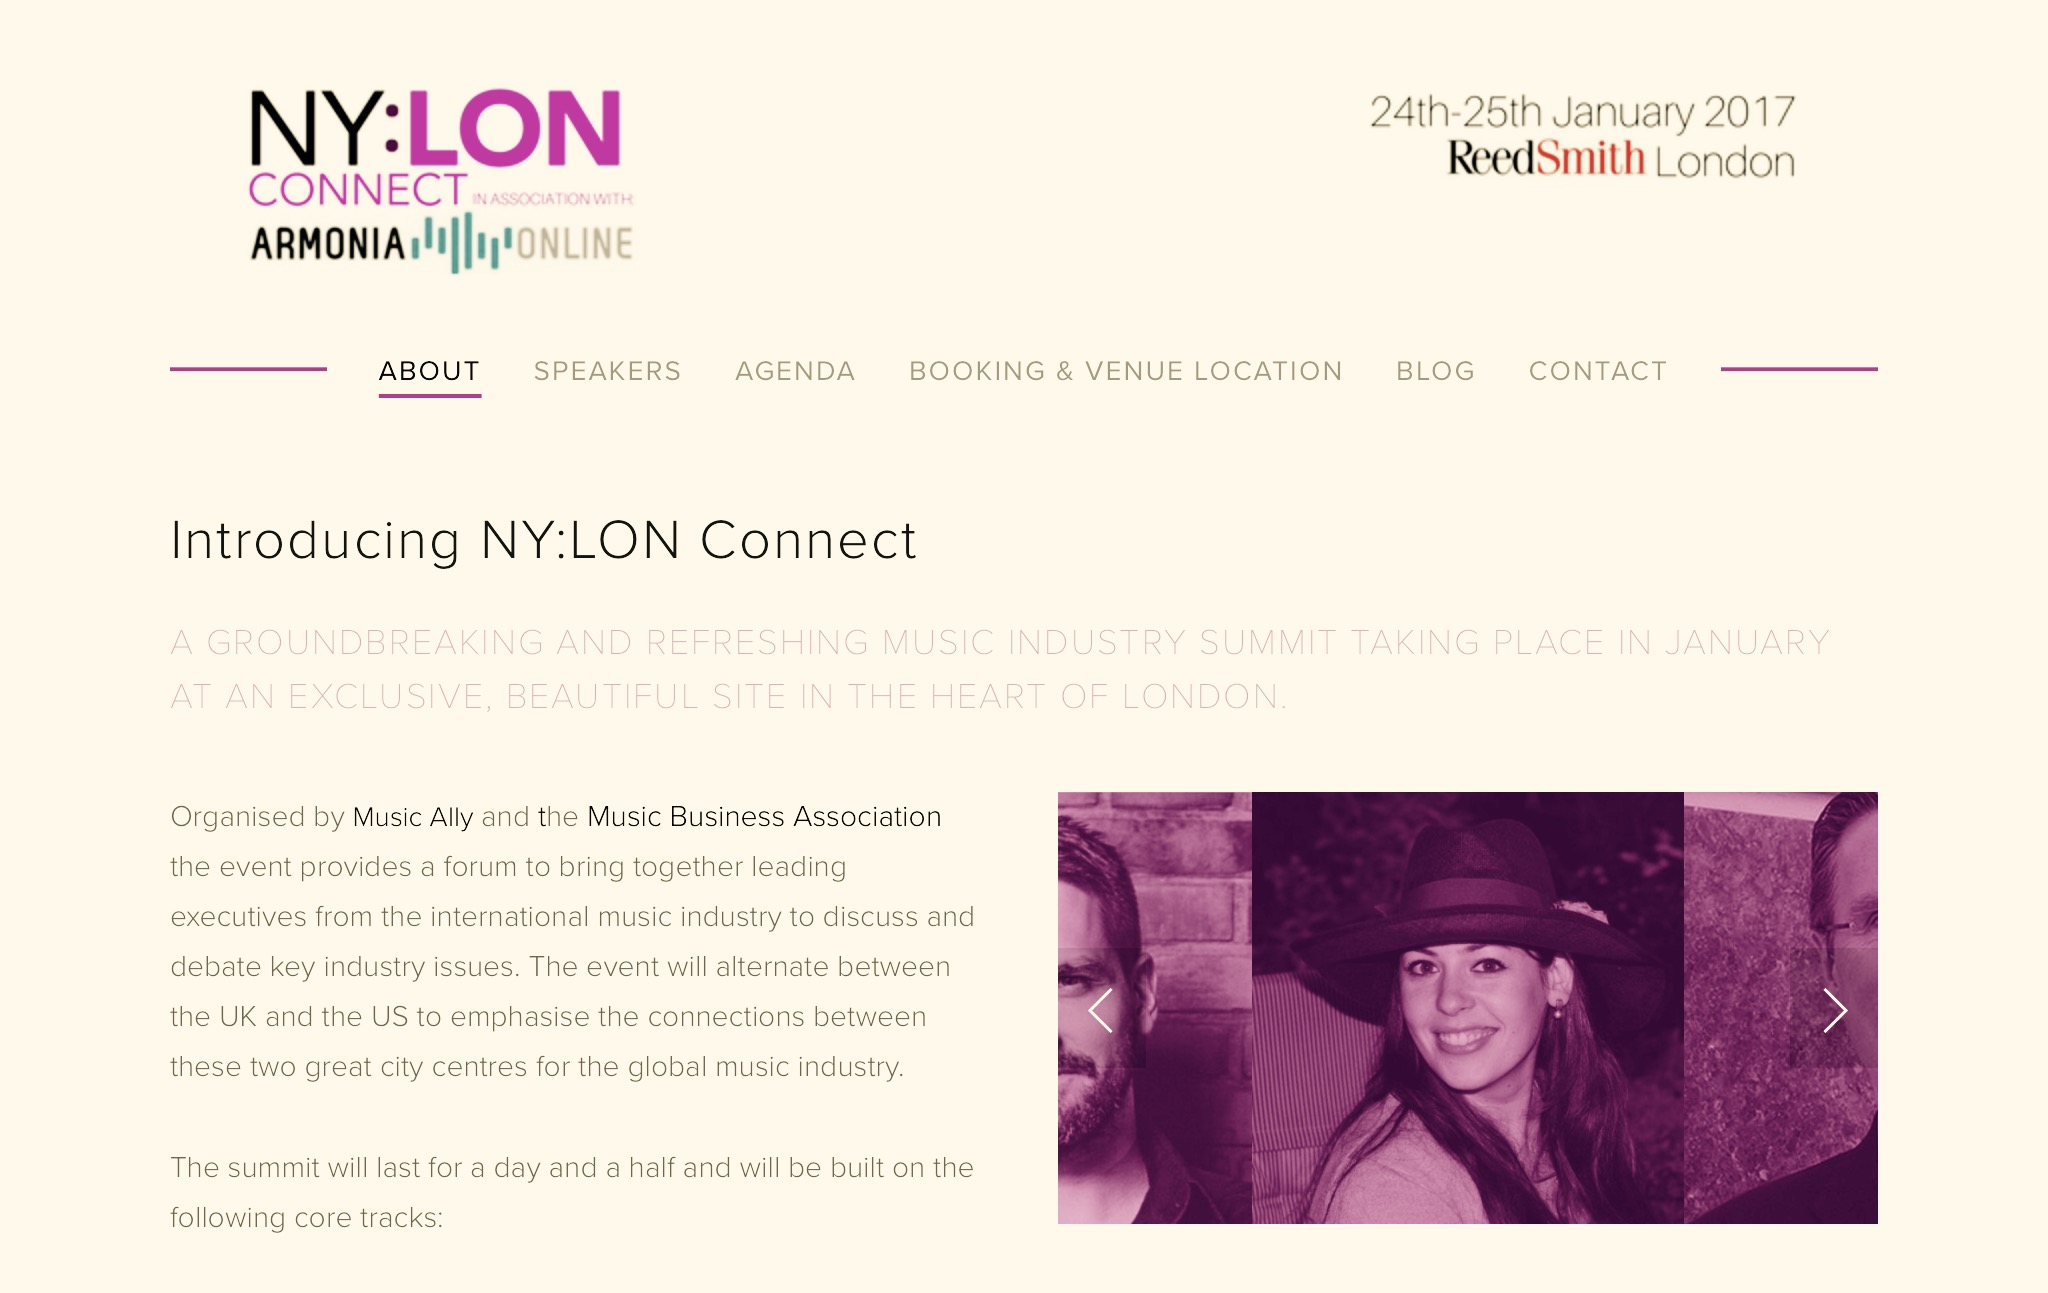 Speaking at NY:LON Thanks to MusicAlly and the Music Business Association